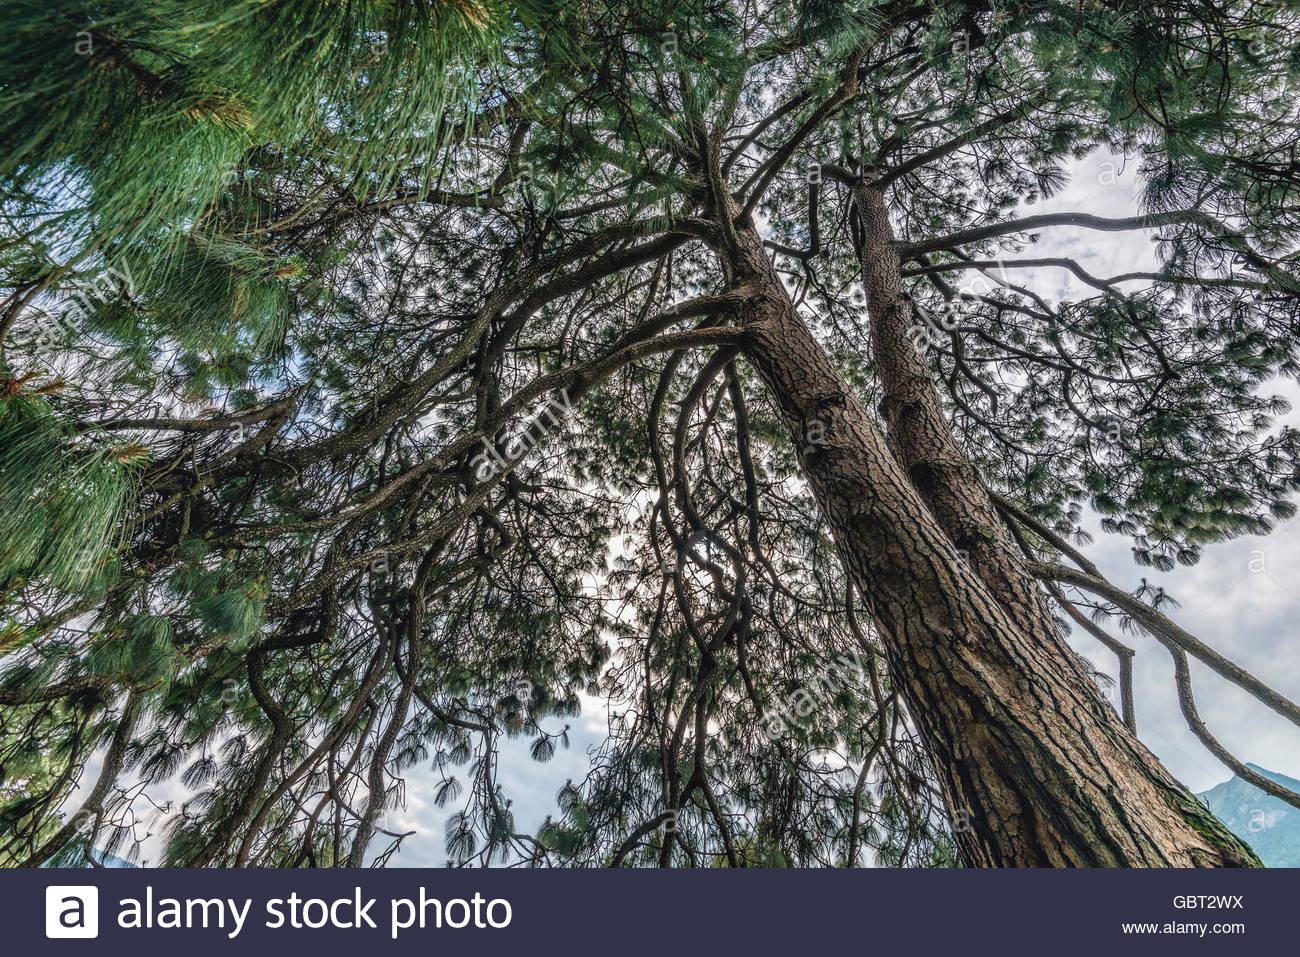 Closeup of a Pinus devoniana (Michoacan Pine), a species of conifer in the Pinaceae family, Garden Villa Melzi, - Stock Image